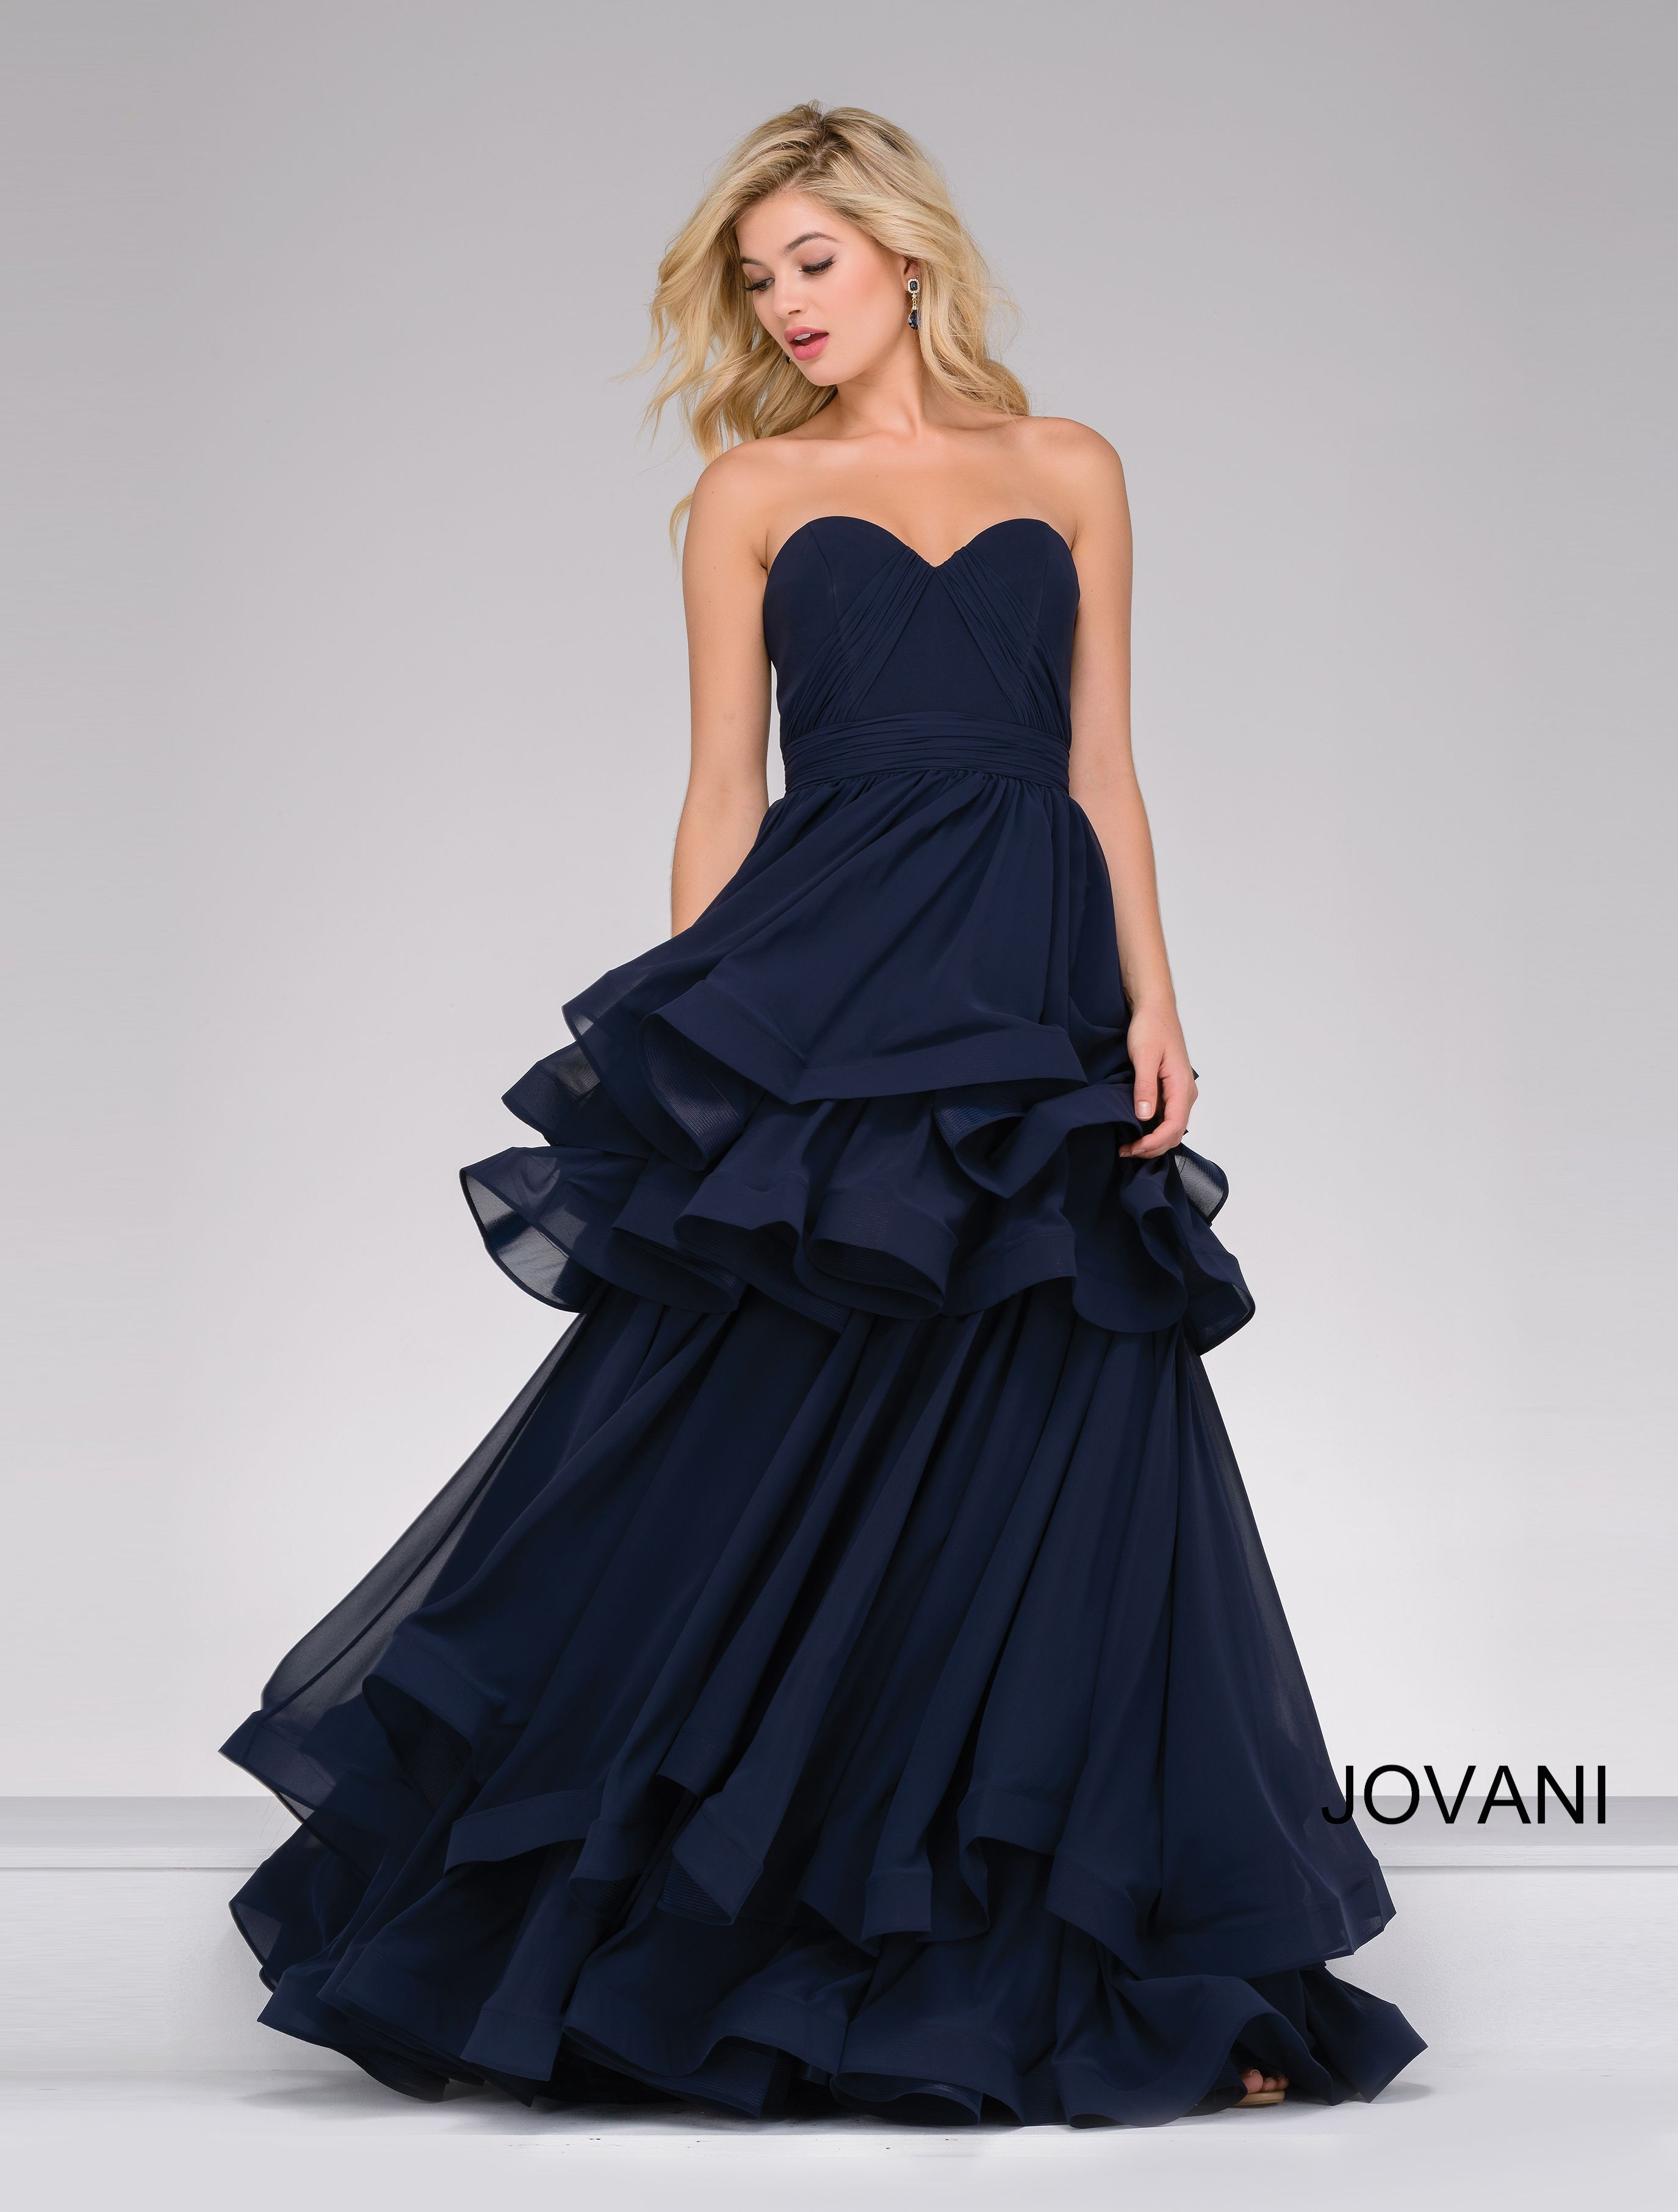 Have fun in jovani style available at whatchamacallit